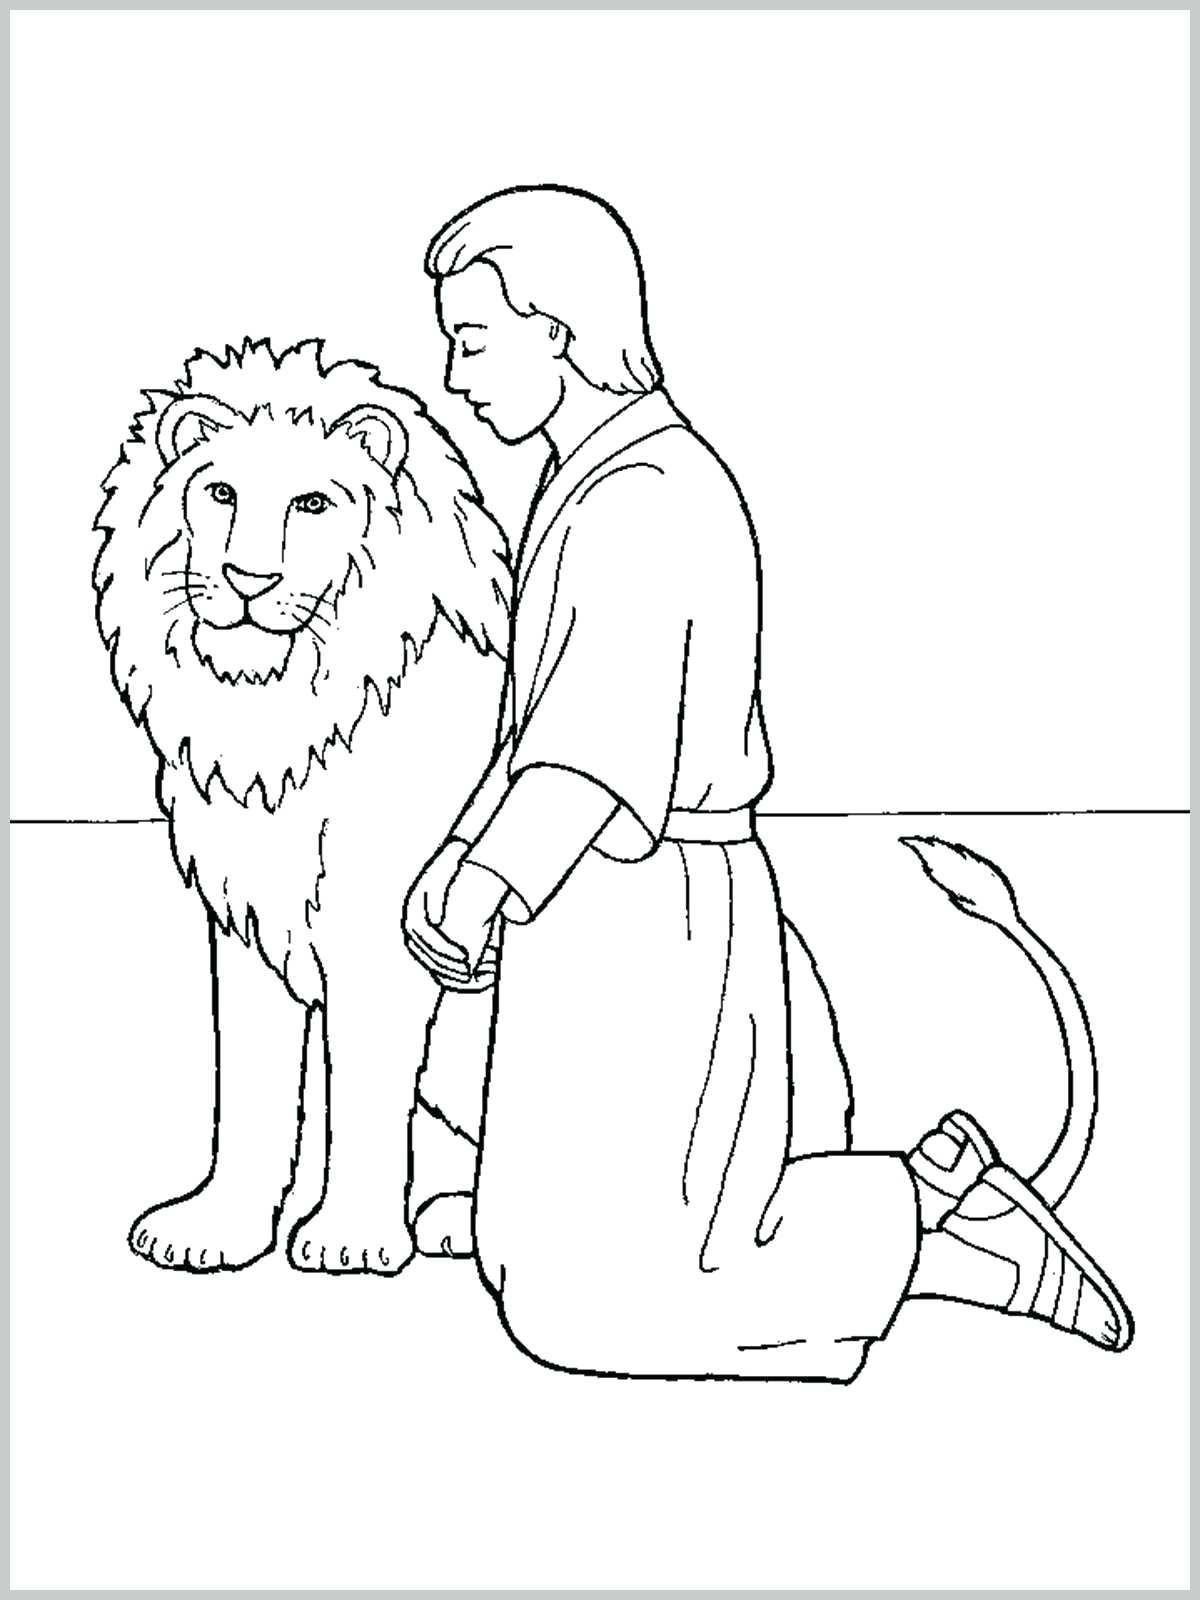 10 Coloring Page Of Daniel In The Lions Den Daniel And The Lions Lion Coloring Pages Coloring Pages